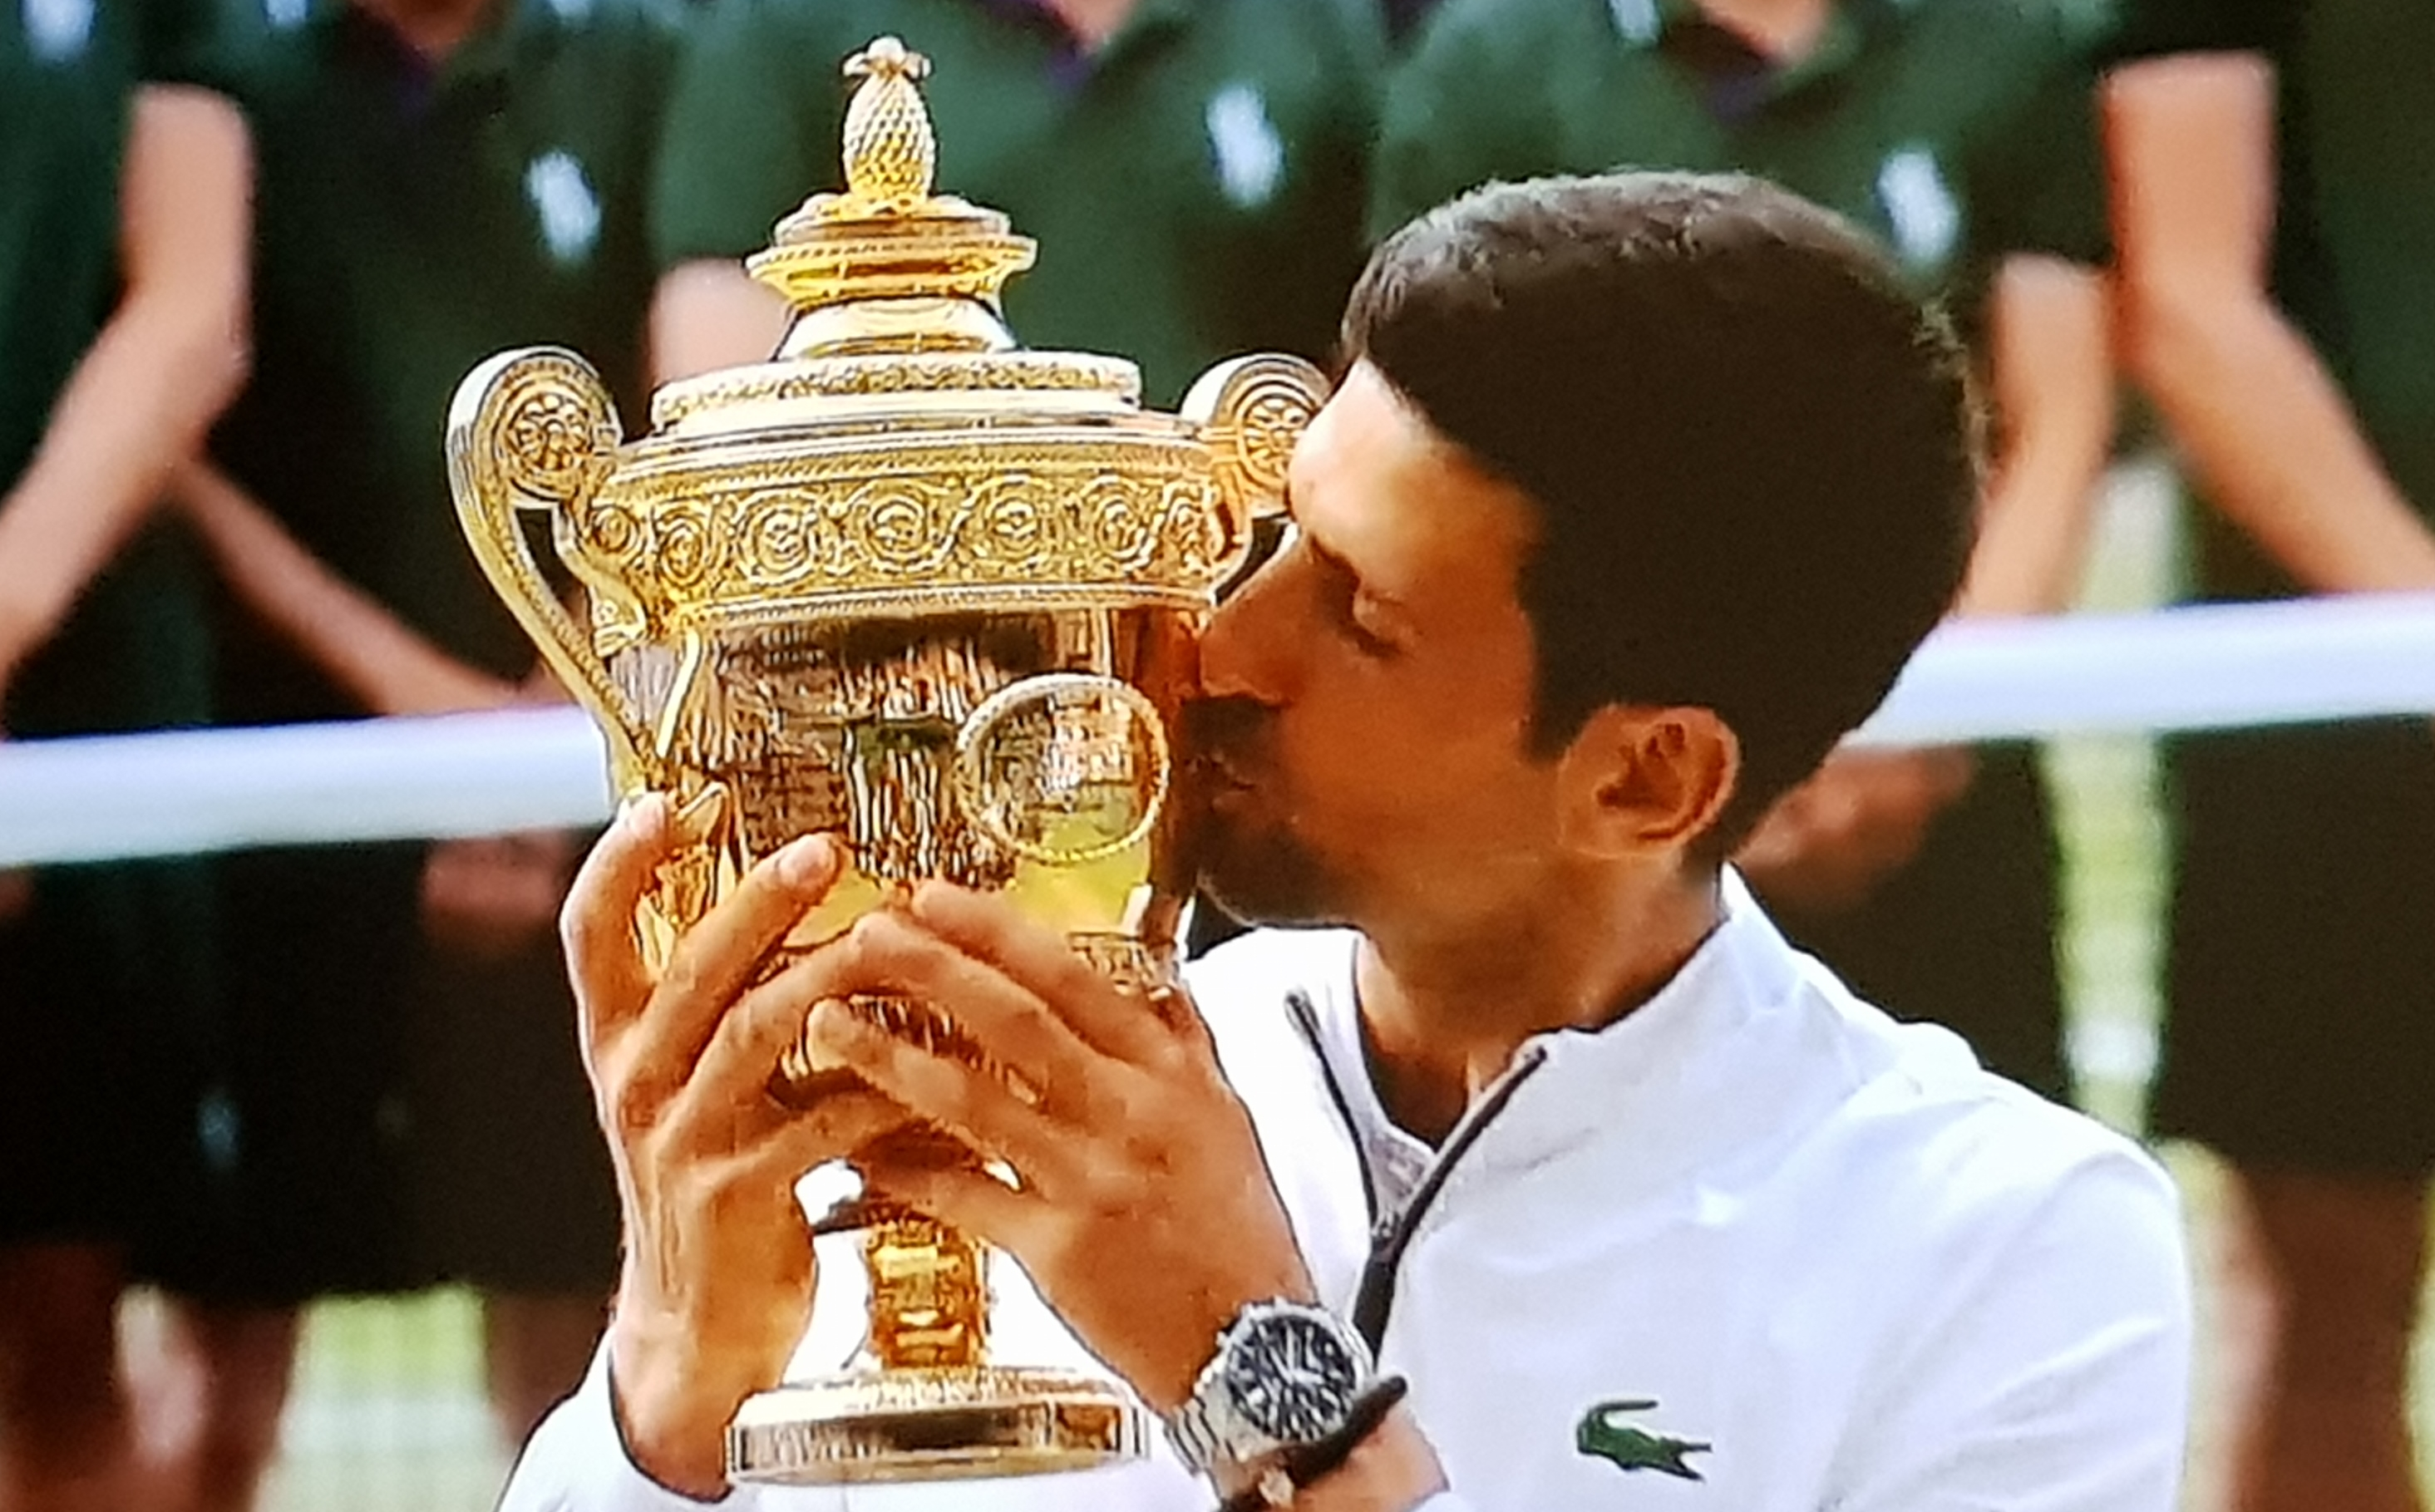 World no. 1, Novak Djokovic gives his Wimbledon Trophy some love after defeating Roger Federer last Saturday.